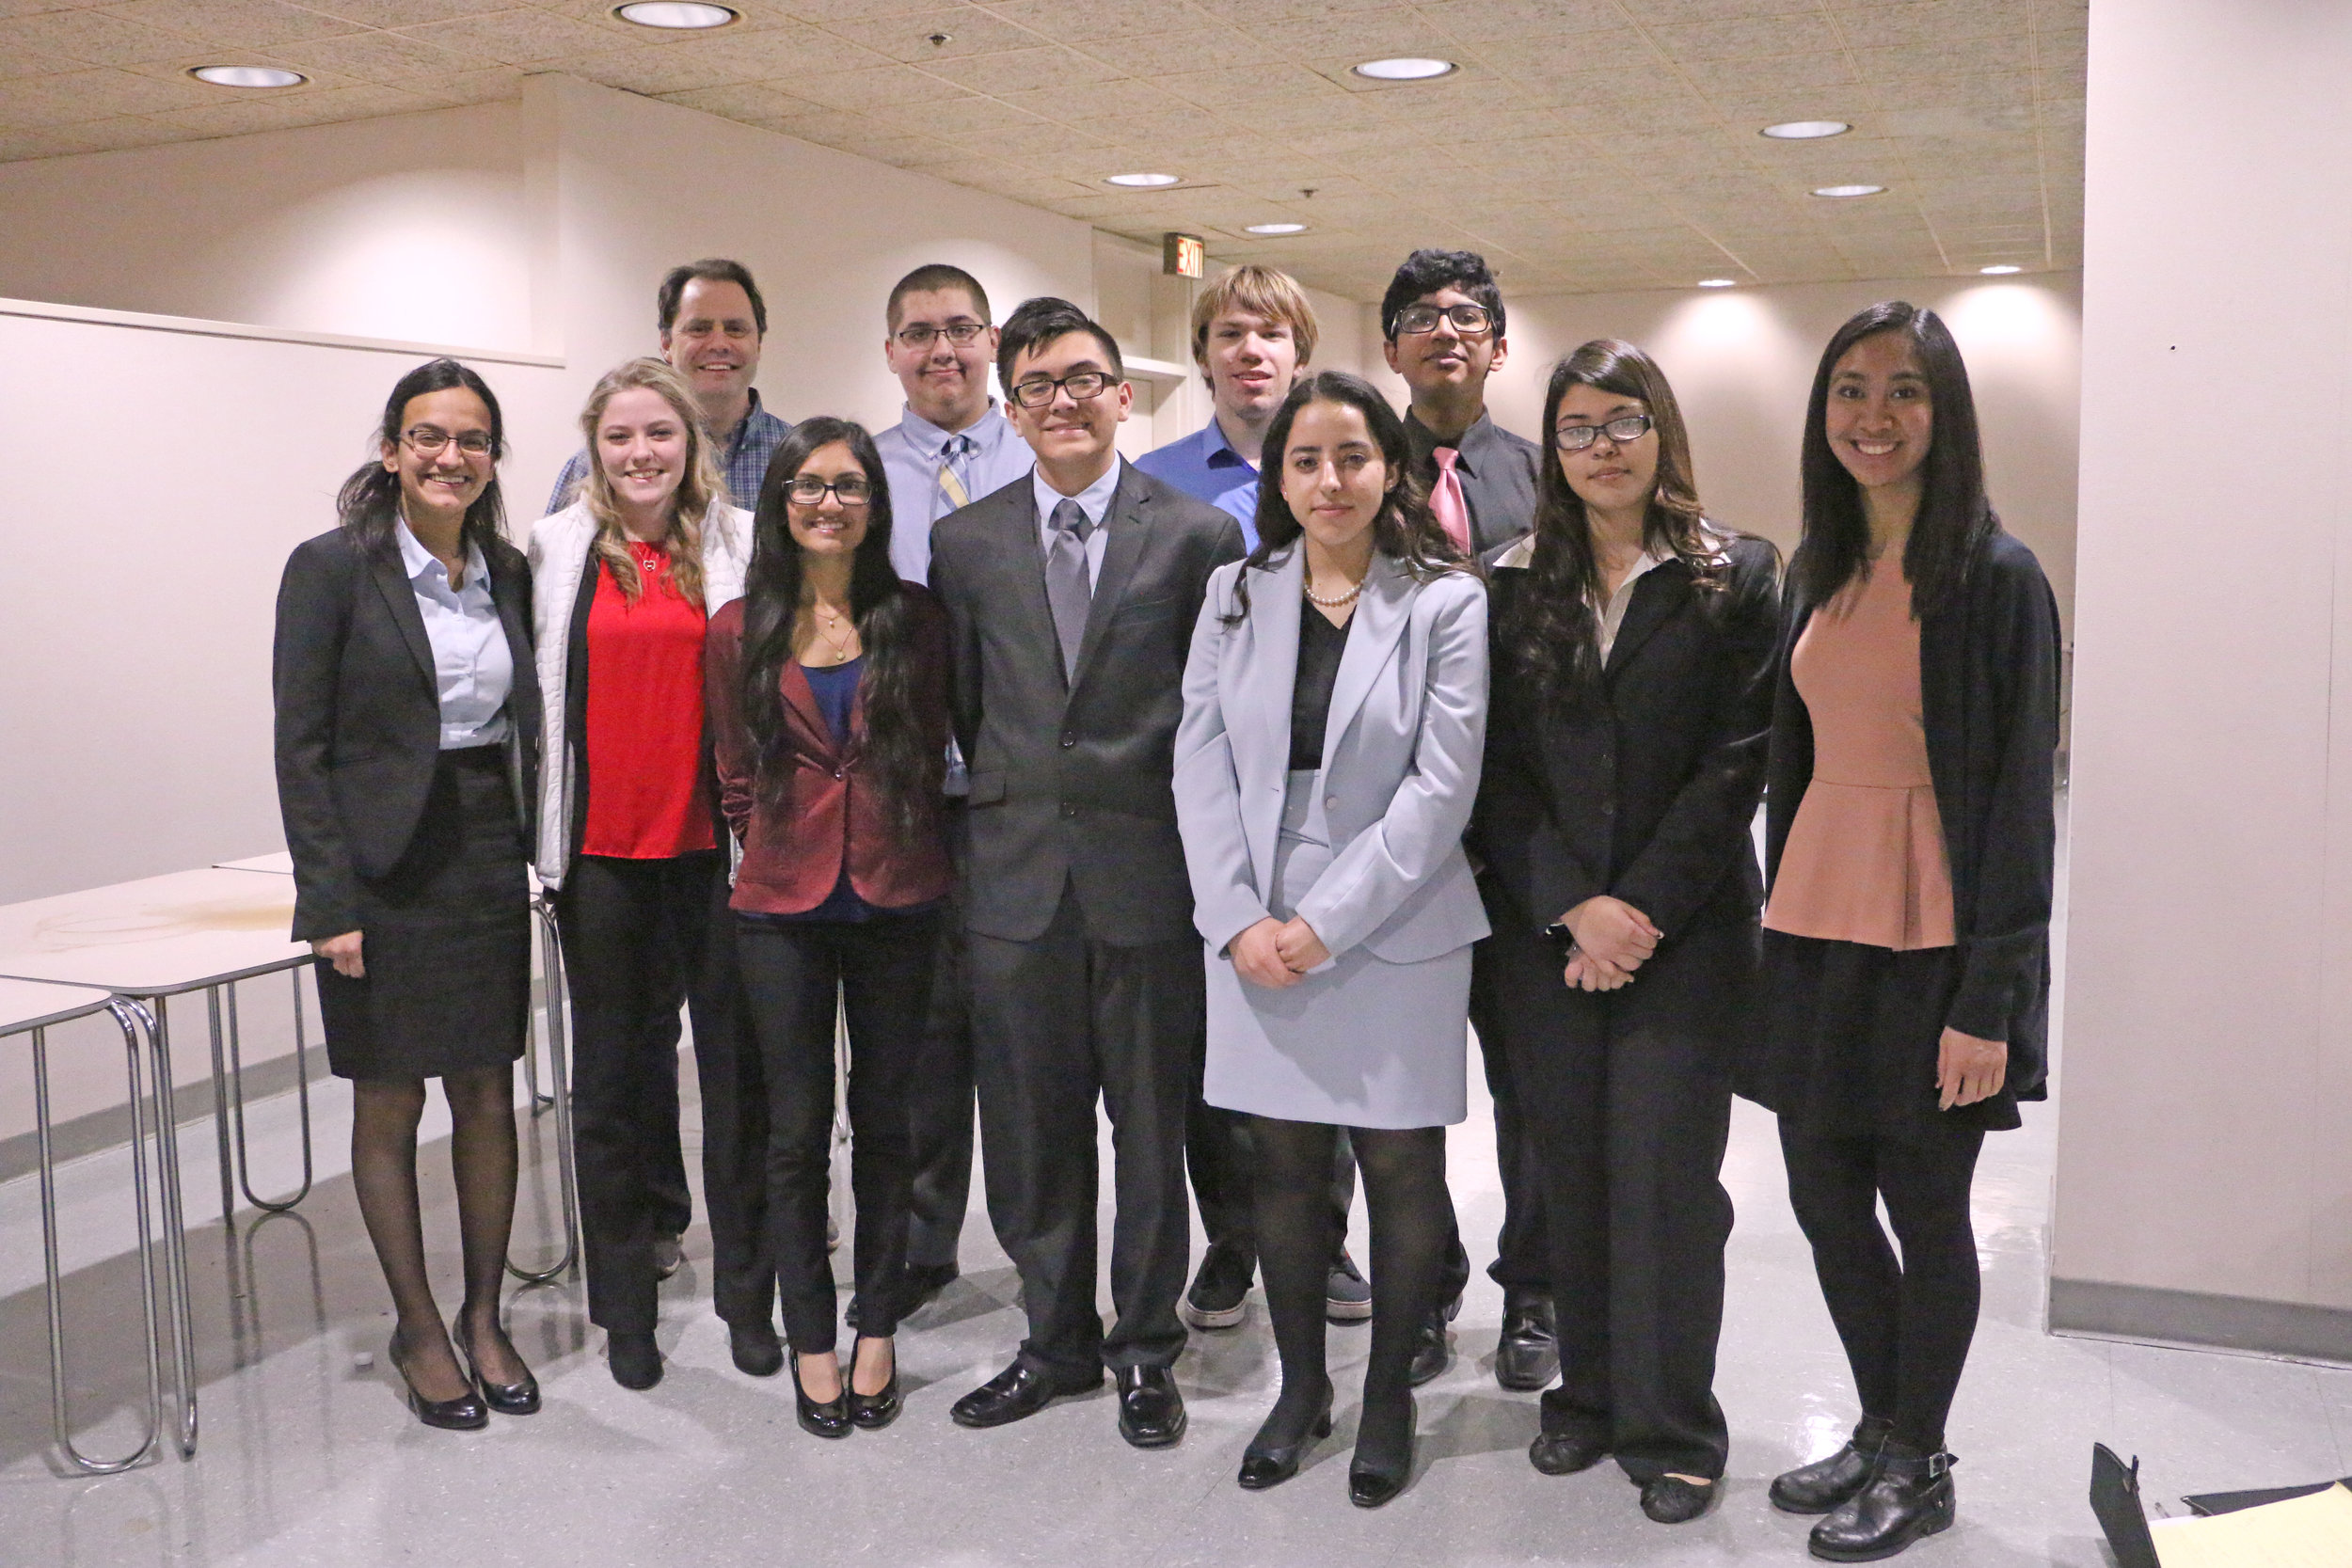 Elk Grove High School participated in the February 2017 mock trial hosted by the Northwest Suburban Bar Association.